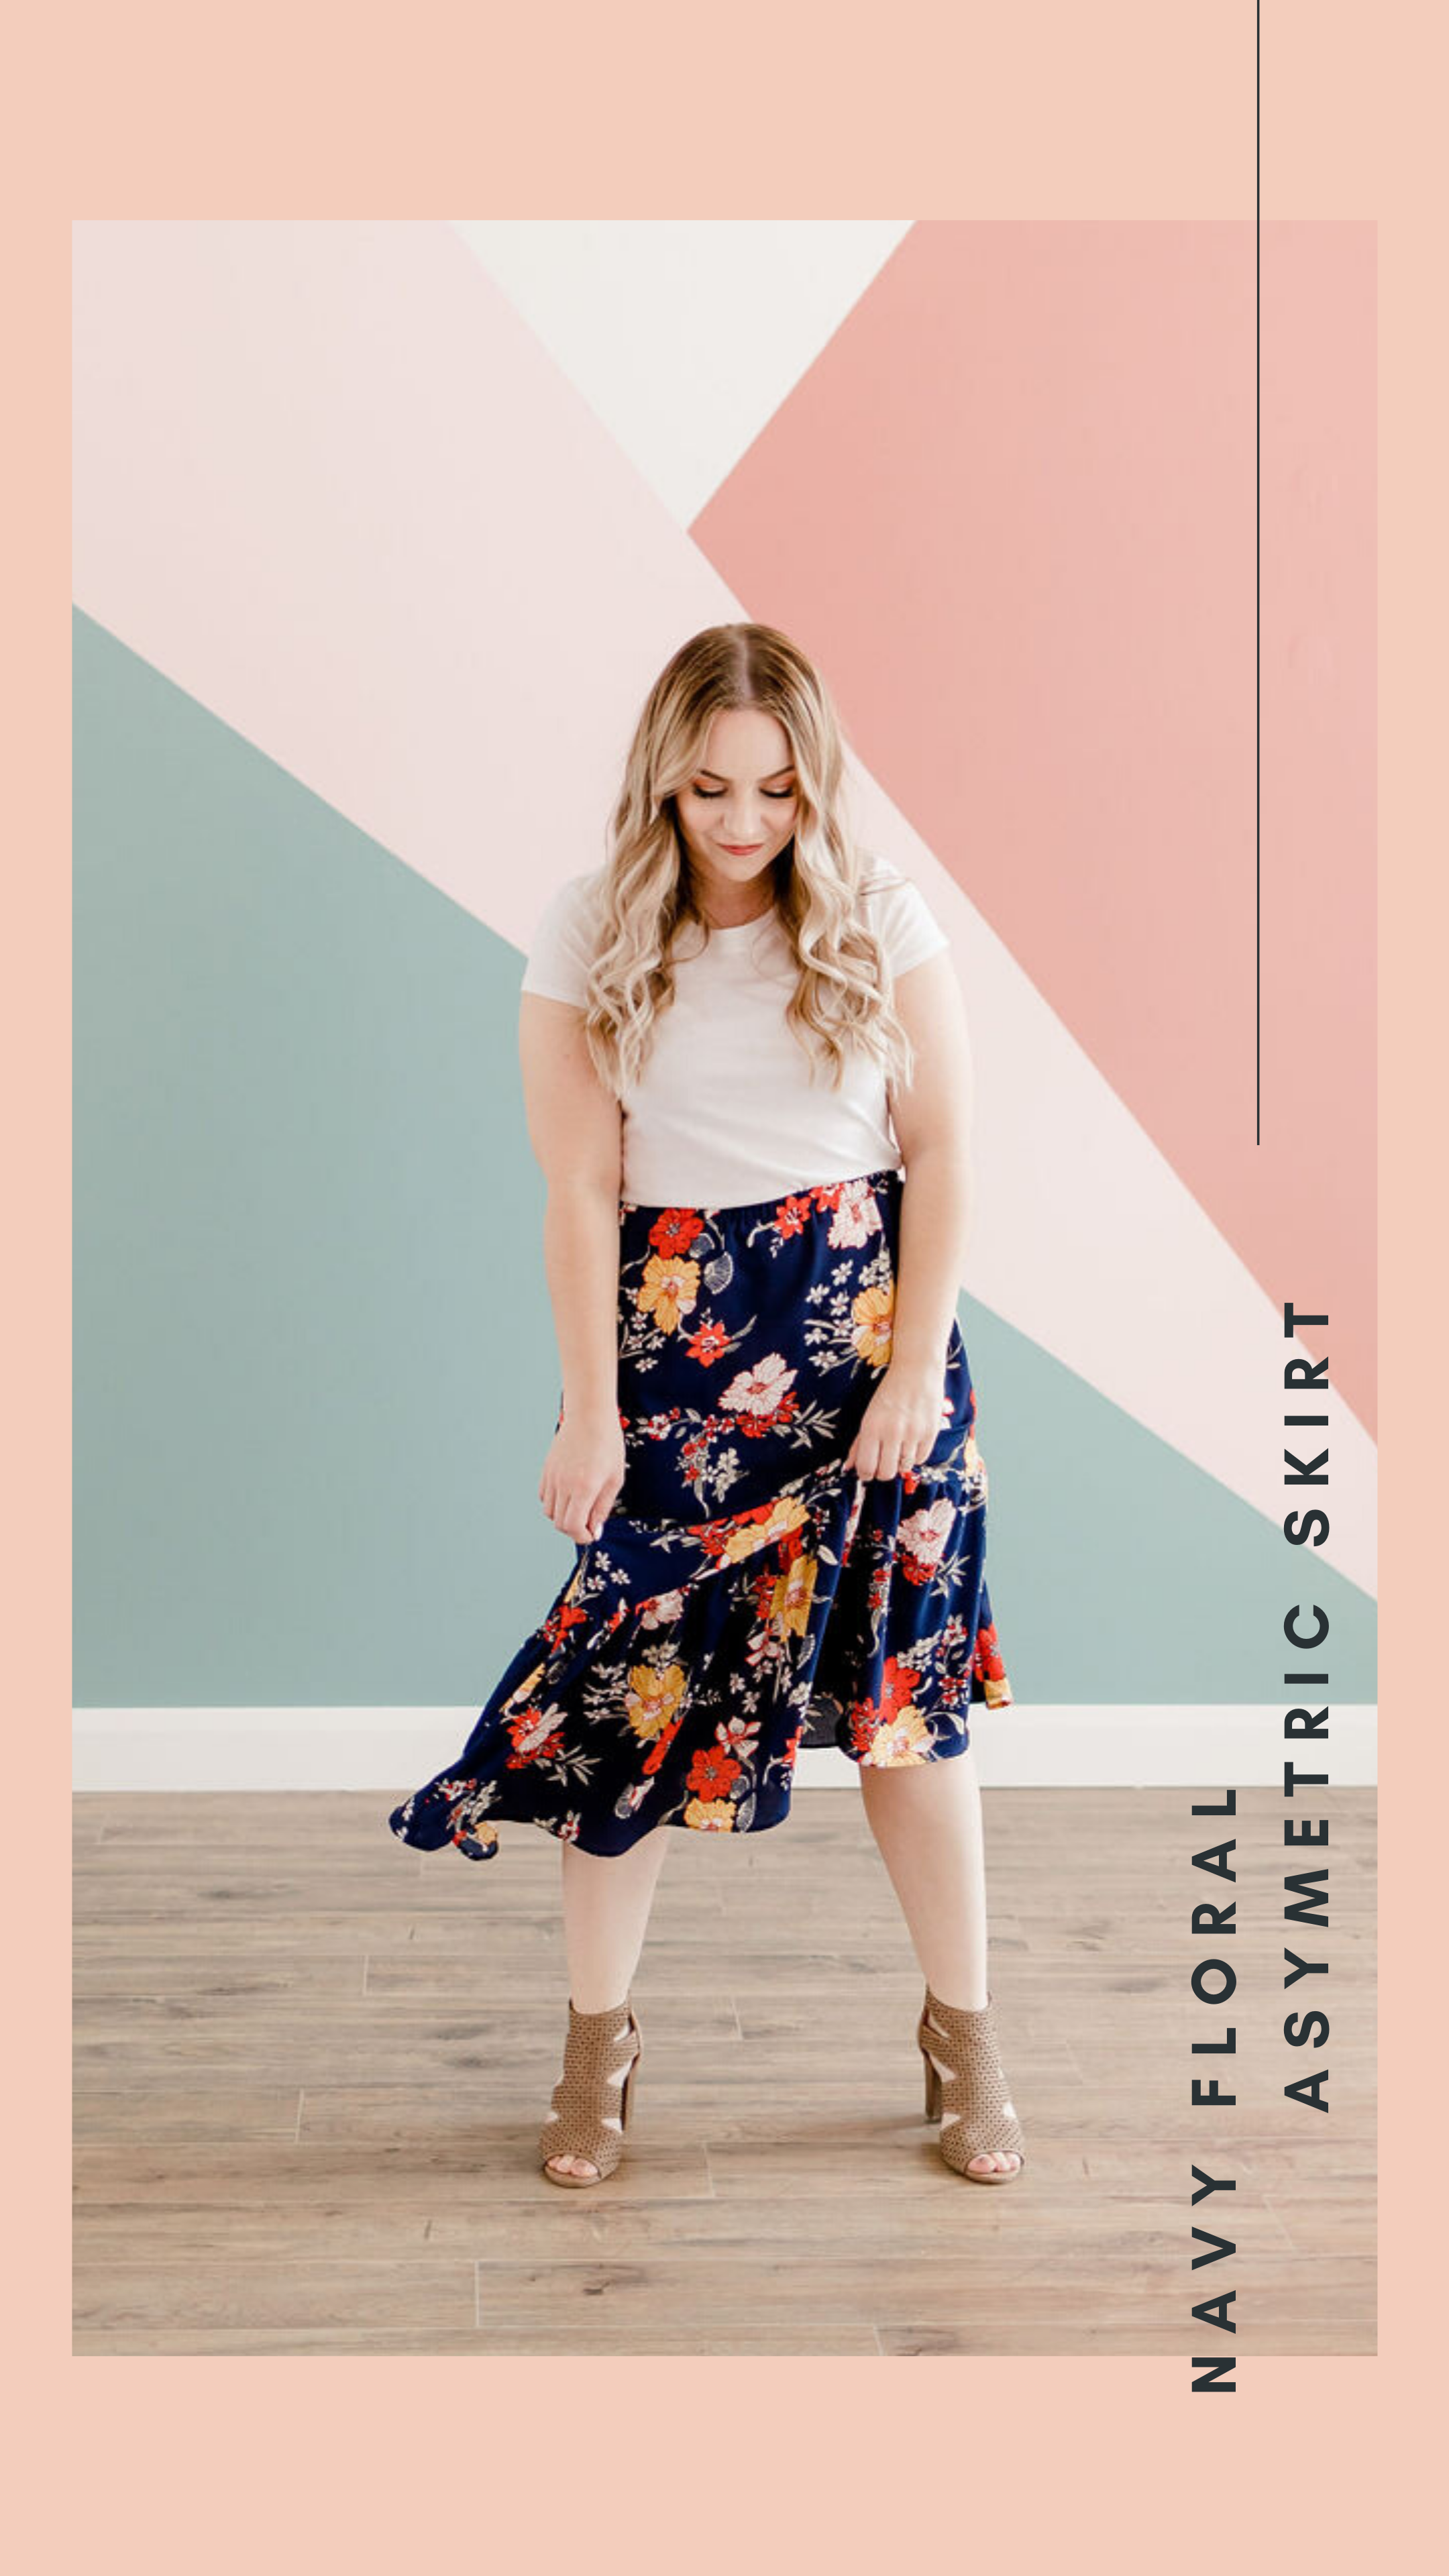 Our navy floral asymmetric ruffle skirt is what skirt dreams are made of! The midi length is flattering and perfect for busy ladies. The waist is elastic which makes it super comfortable. You can wear it with our wrap top or with your favorite graphic tee. #juniperdressco #handmadeskirt #skirt #customskirt #juniperclothing #modestclothing #slowfashion #ootd #modestootd #utahstyle  #madeintheUSA #skirtoutfit #skirtstyle #midiskirt #utahboutique #ruffleskirt #ruffles